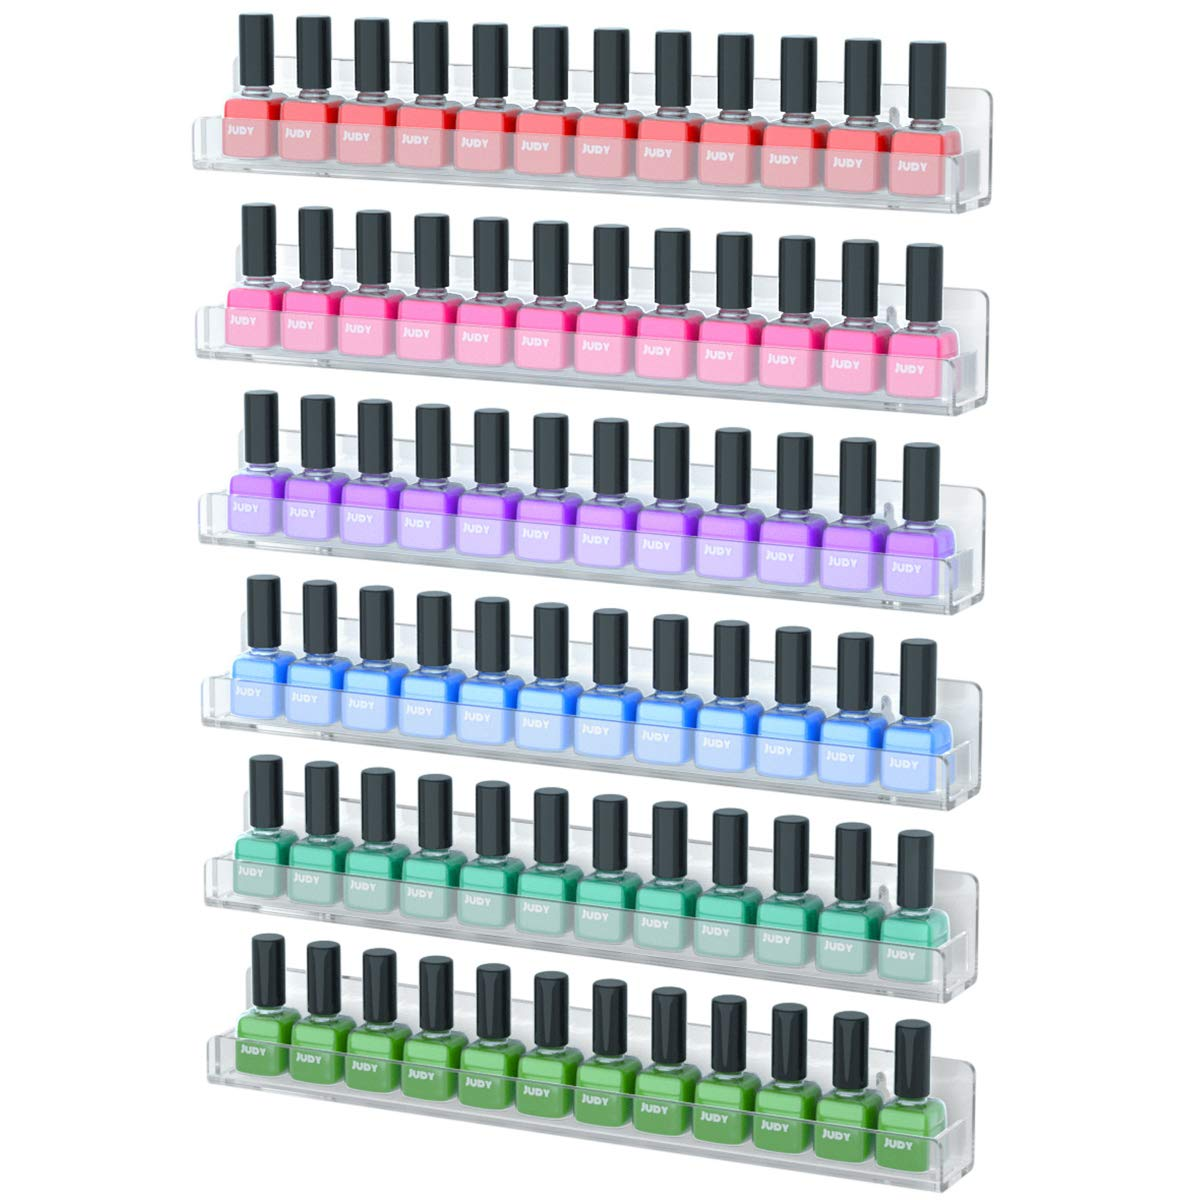 NIUBEE 6 Pack Nail Polish Rack Wall Mounted Shelf with Removable Anti-slip End Inserts, Clear Acrylic Nail Polish Organizer Display 90 Bottles